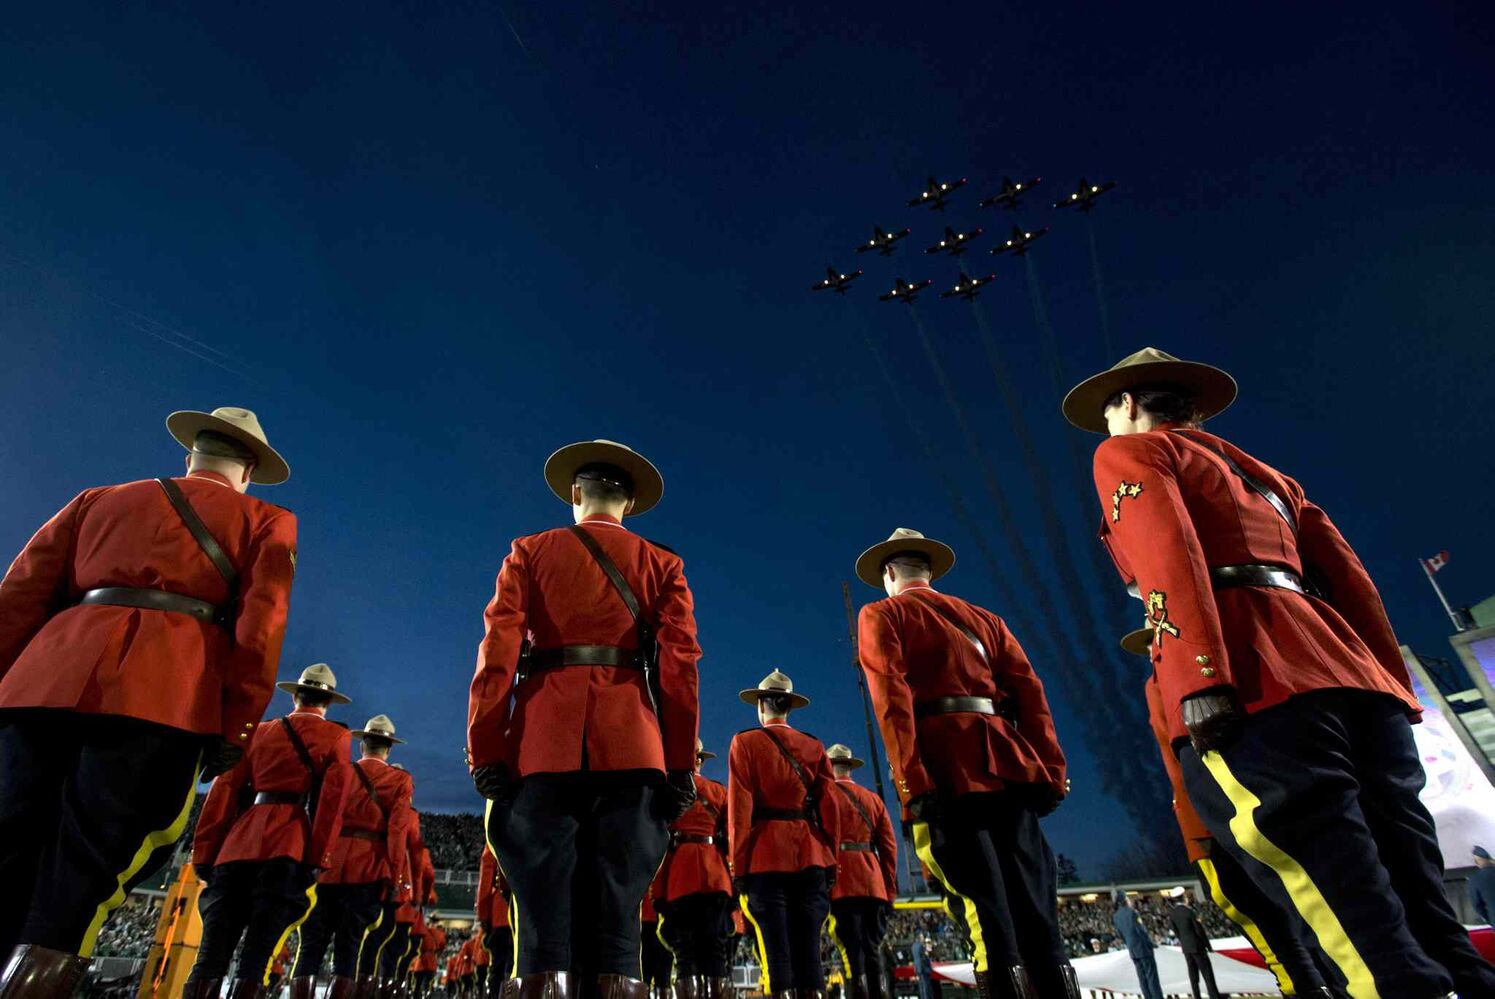 The Snowbirds fly over the field during pre-game ceremonies at the Grey Cup. (Frank Gunn / The Canadian Press)